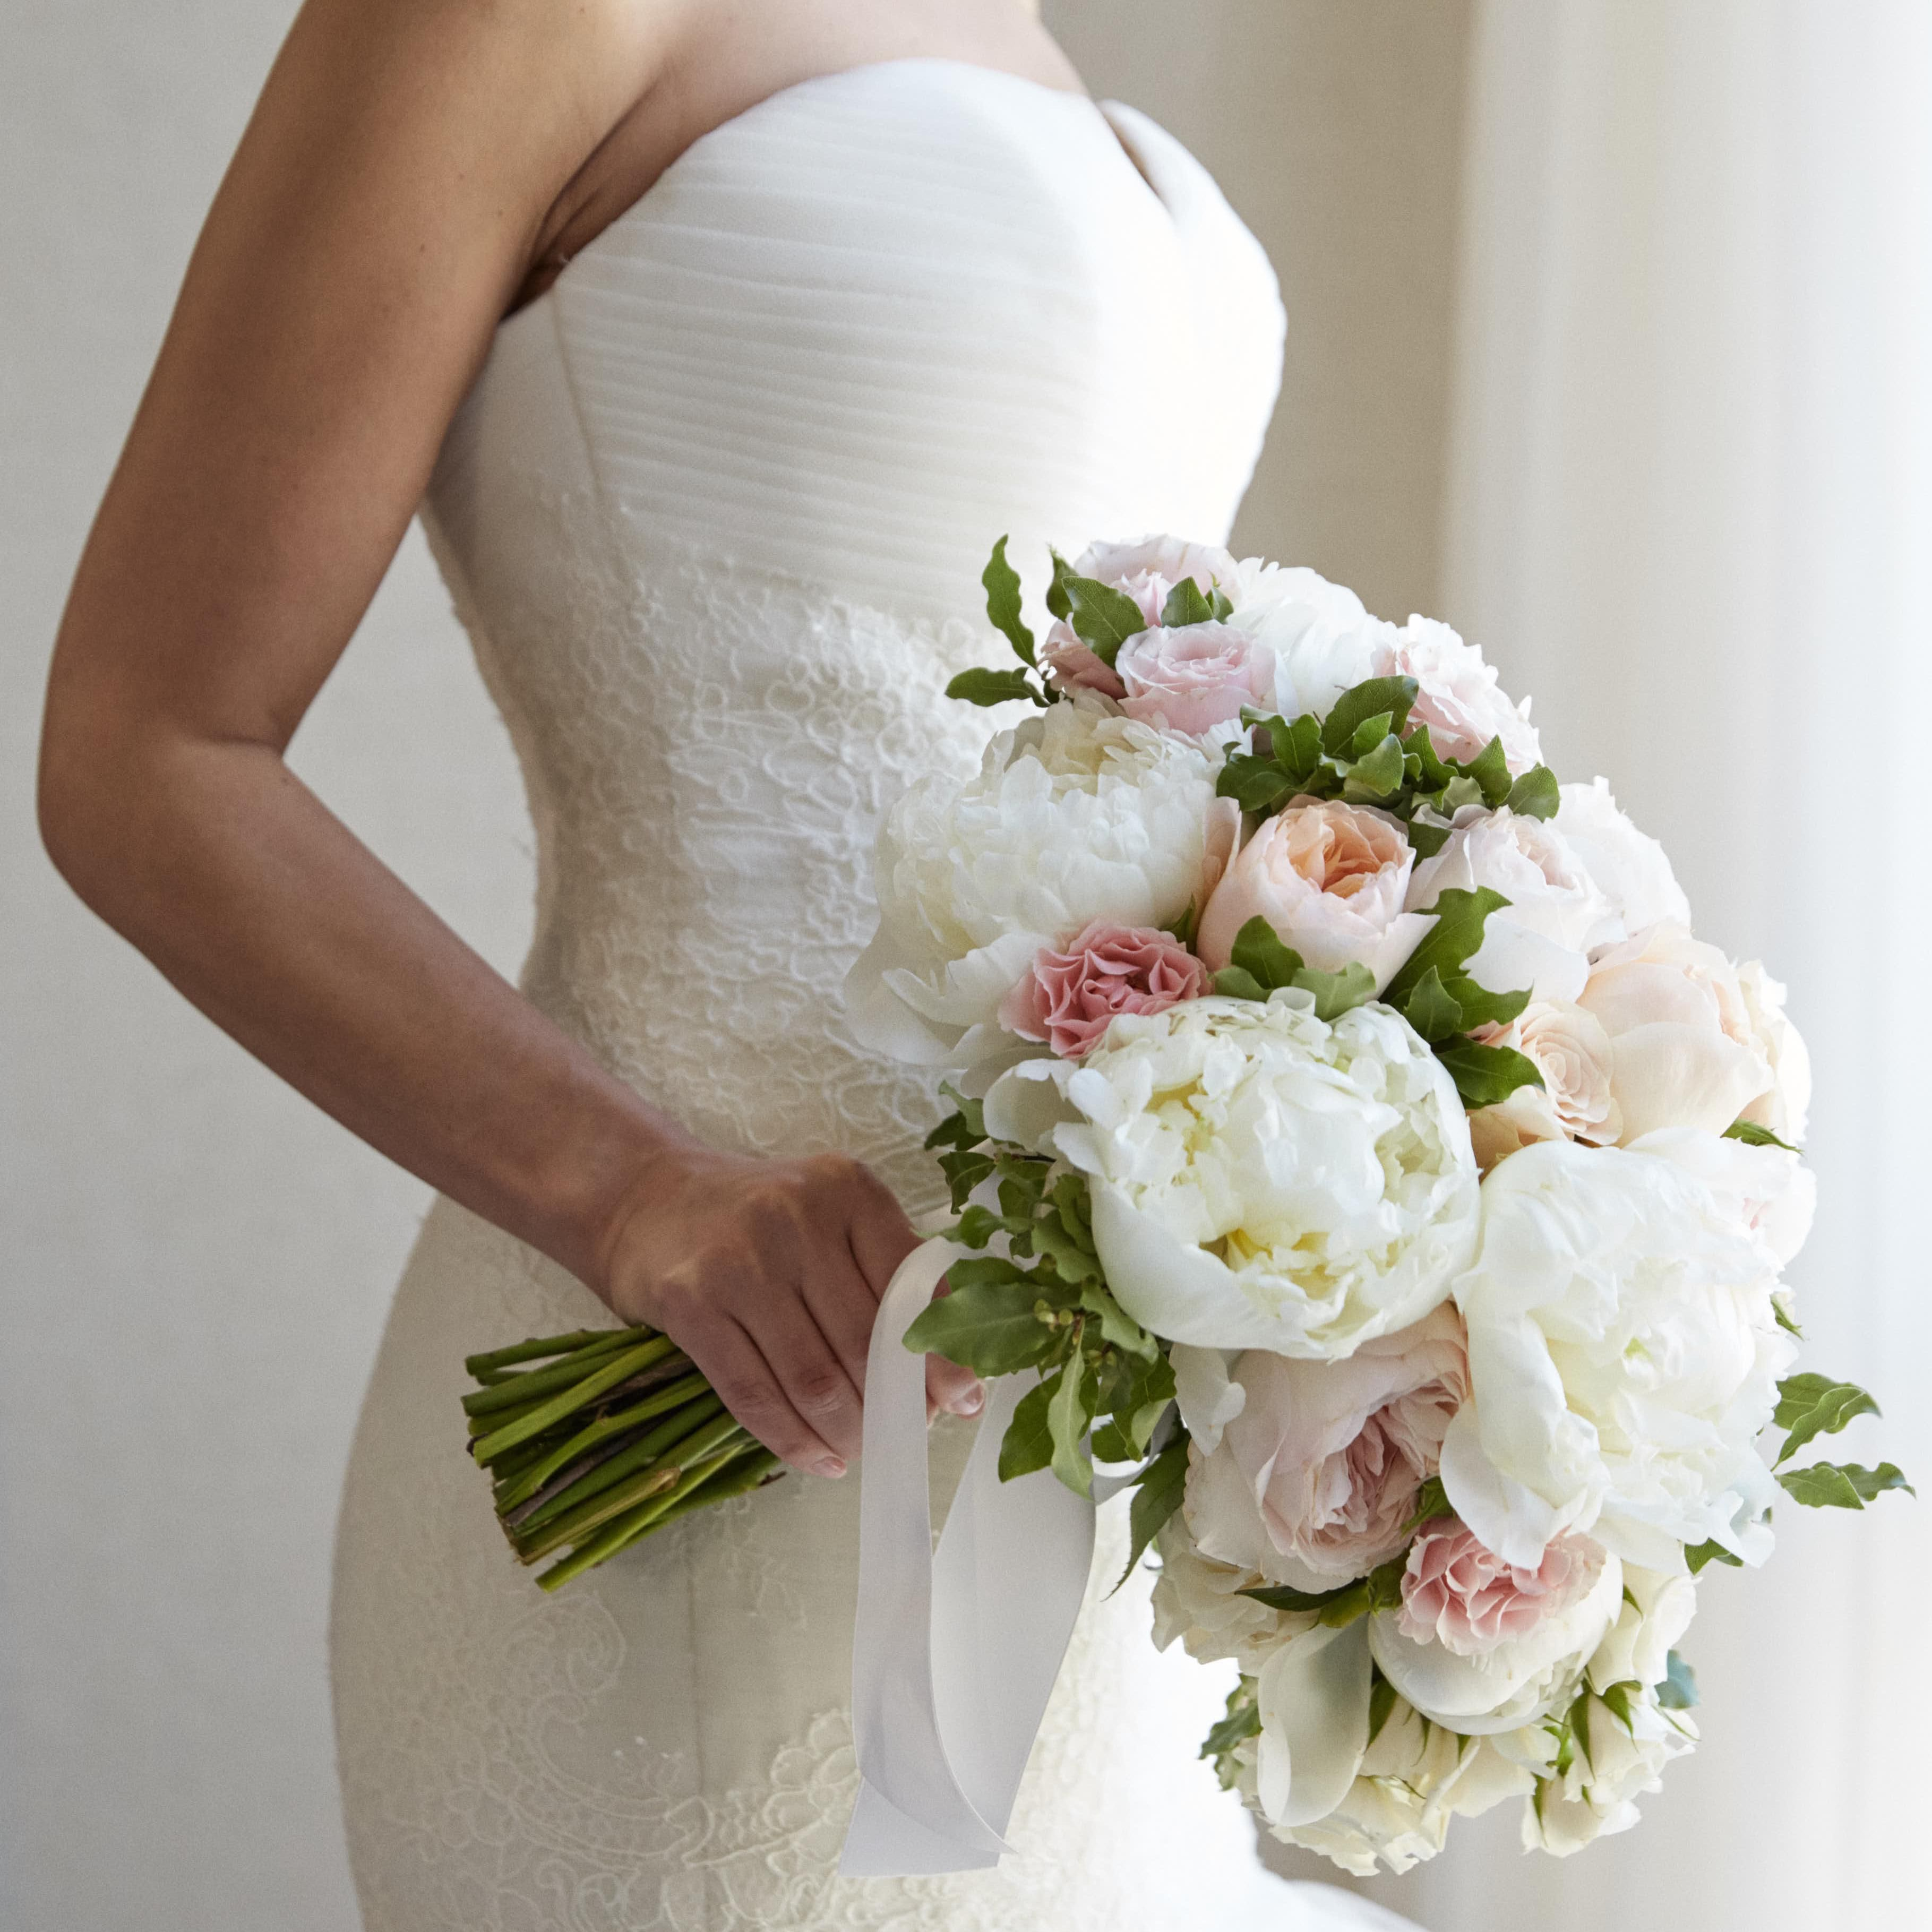 Legit Reasons To Retire The Tradition Of Tossing The Bridal Bouquet